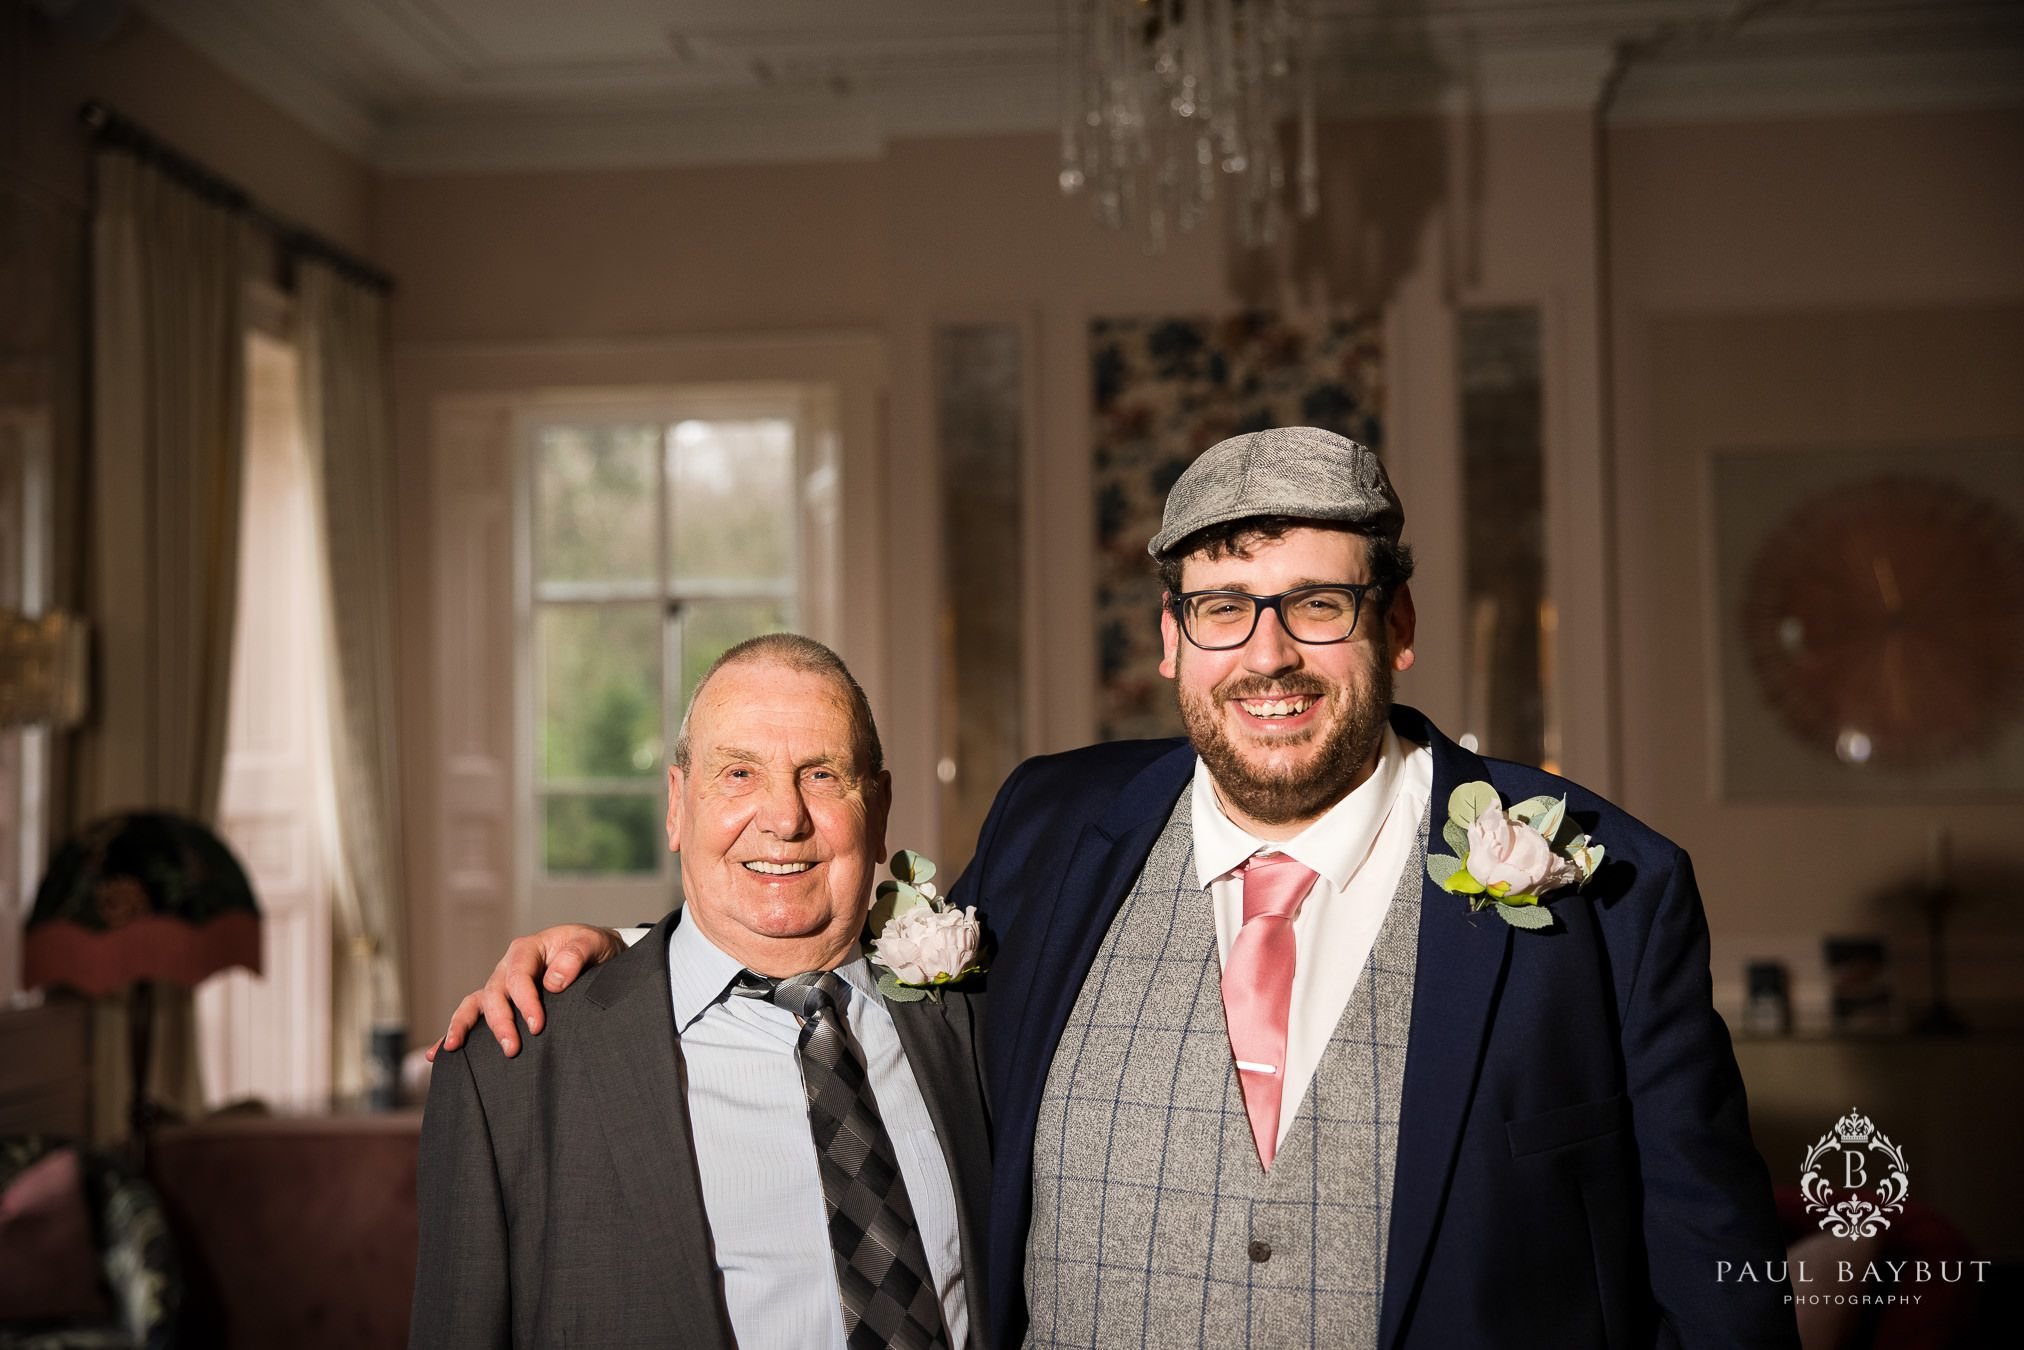 Family wedding photos at Mottram Hall Winter wedding